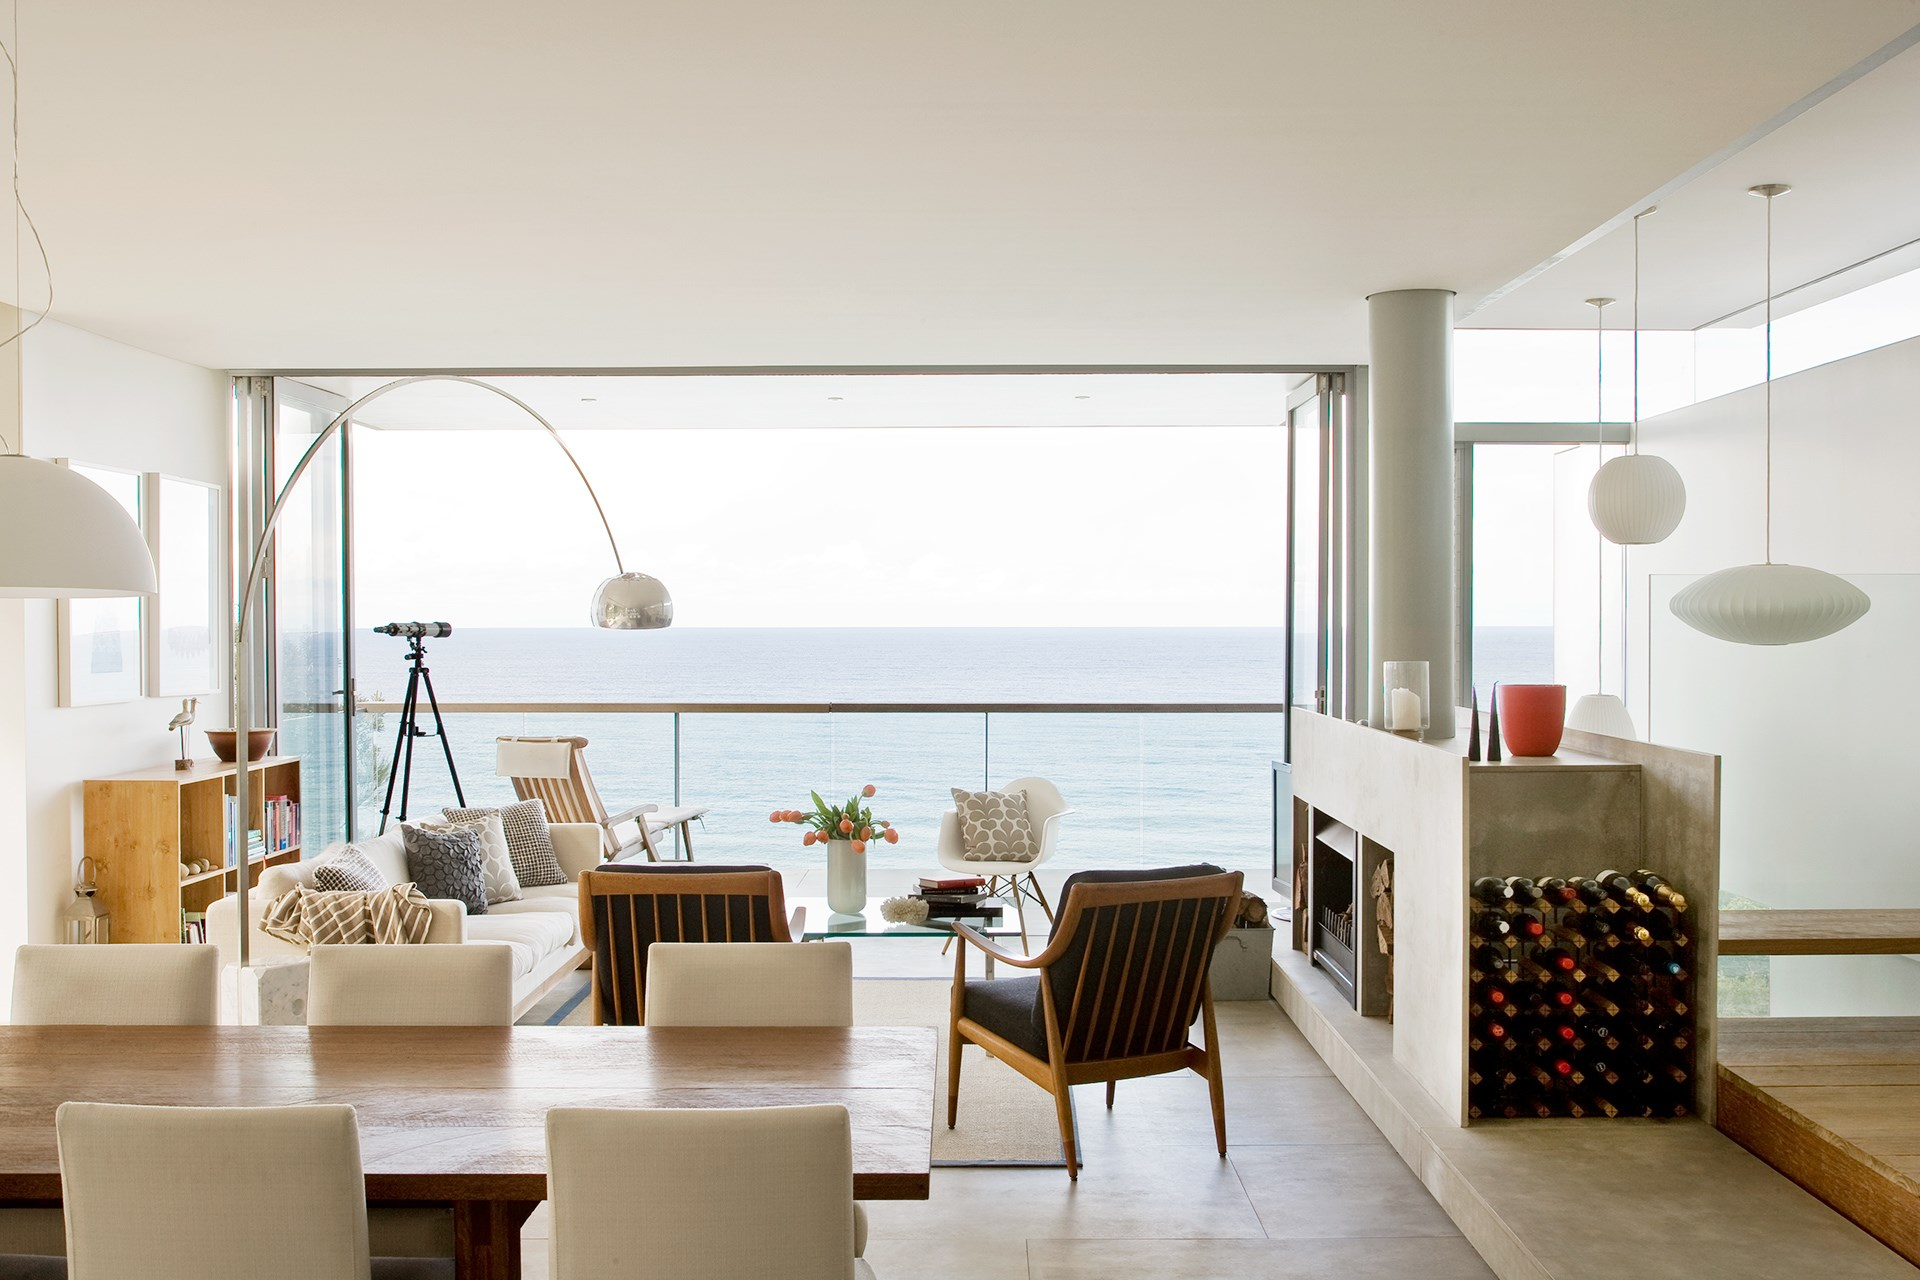 """The ocean vista is the star attraction of this home and every seat in the house provides a wonderful vantage point. """"From the bench on the landing, you get a view across the void out to the ocean,"""" says Alison."""